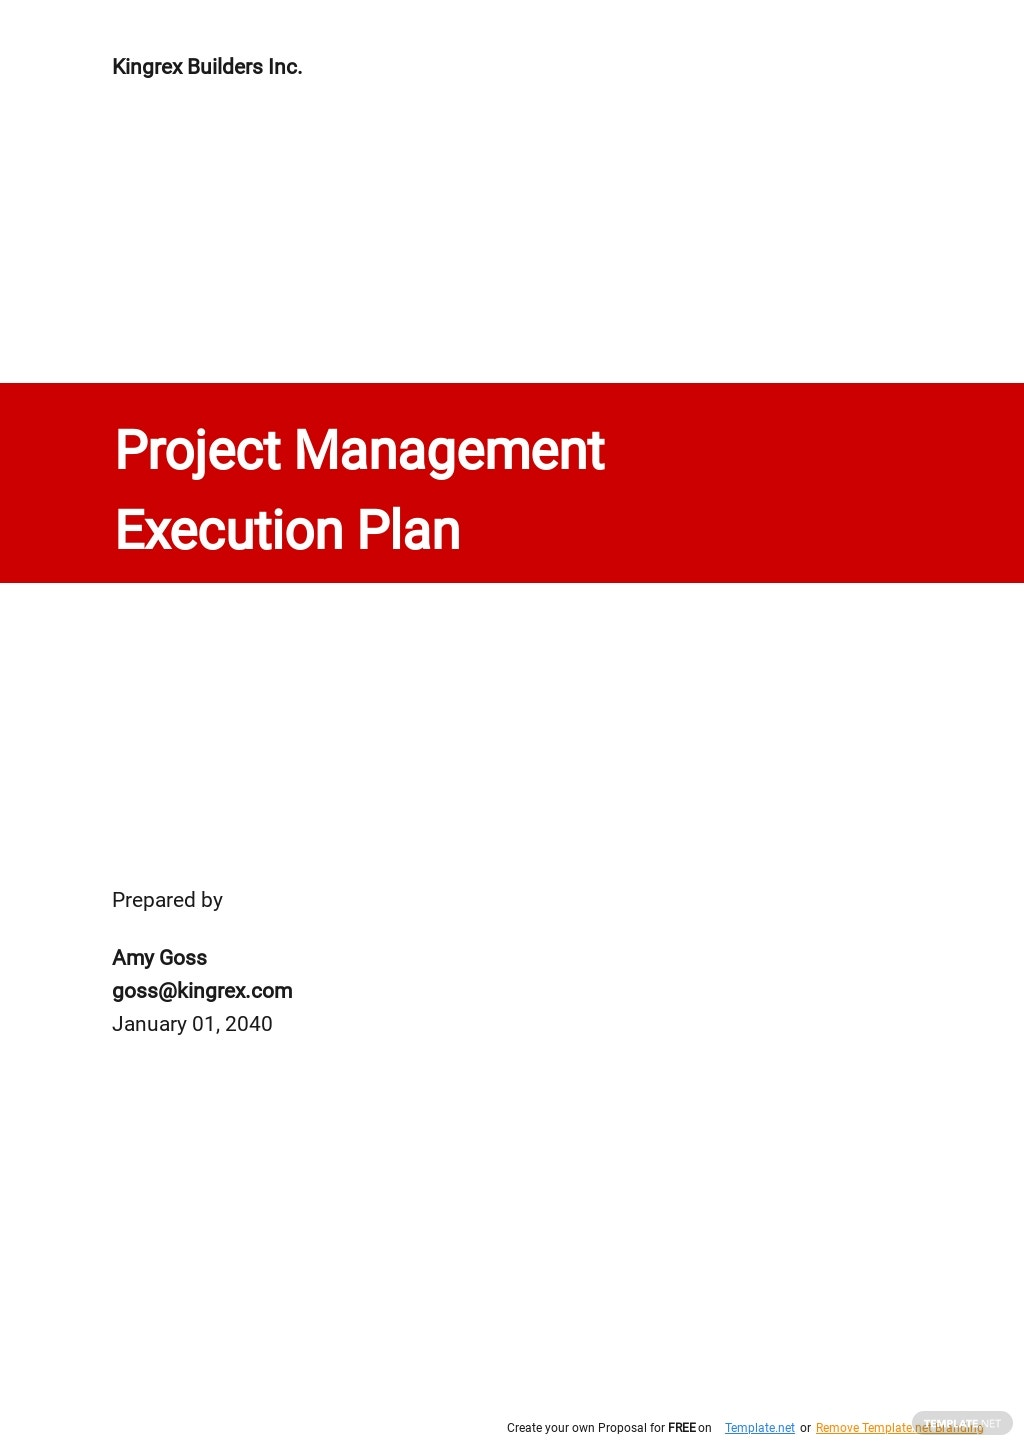 Project Management Execution Plan Template.jpe